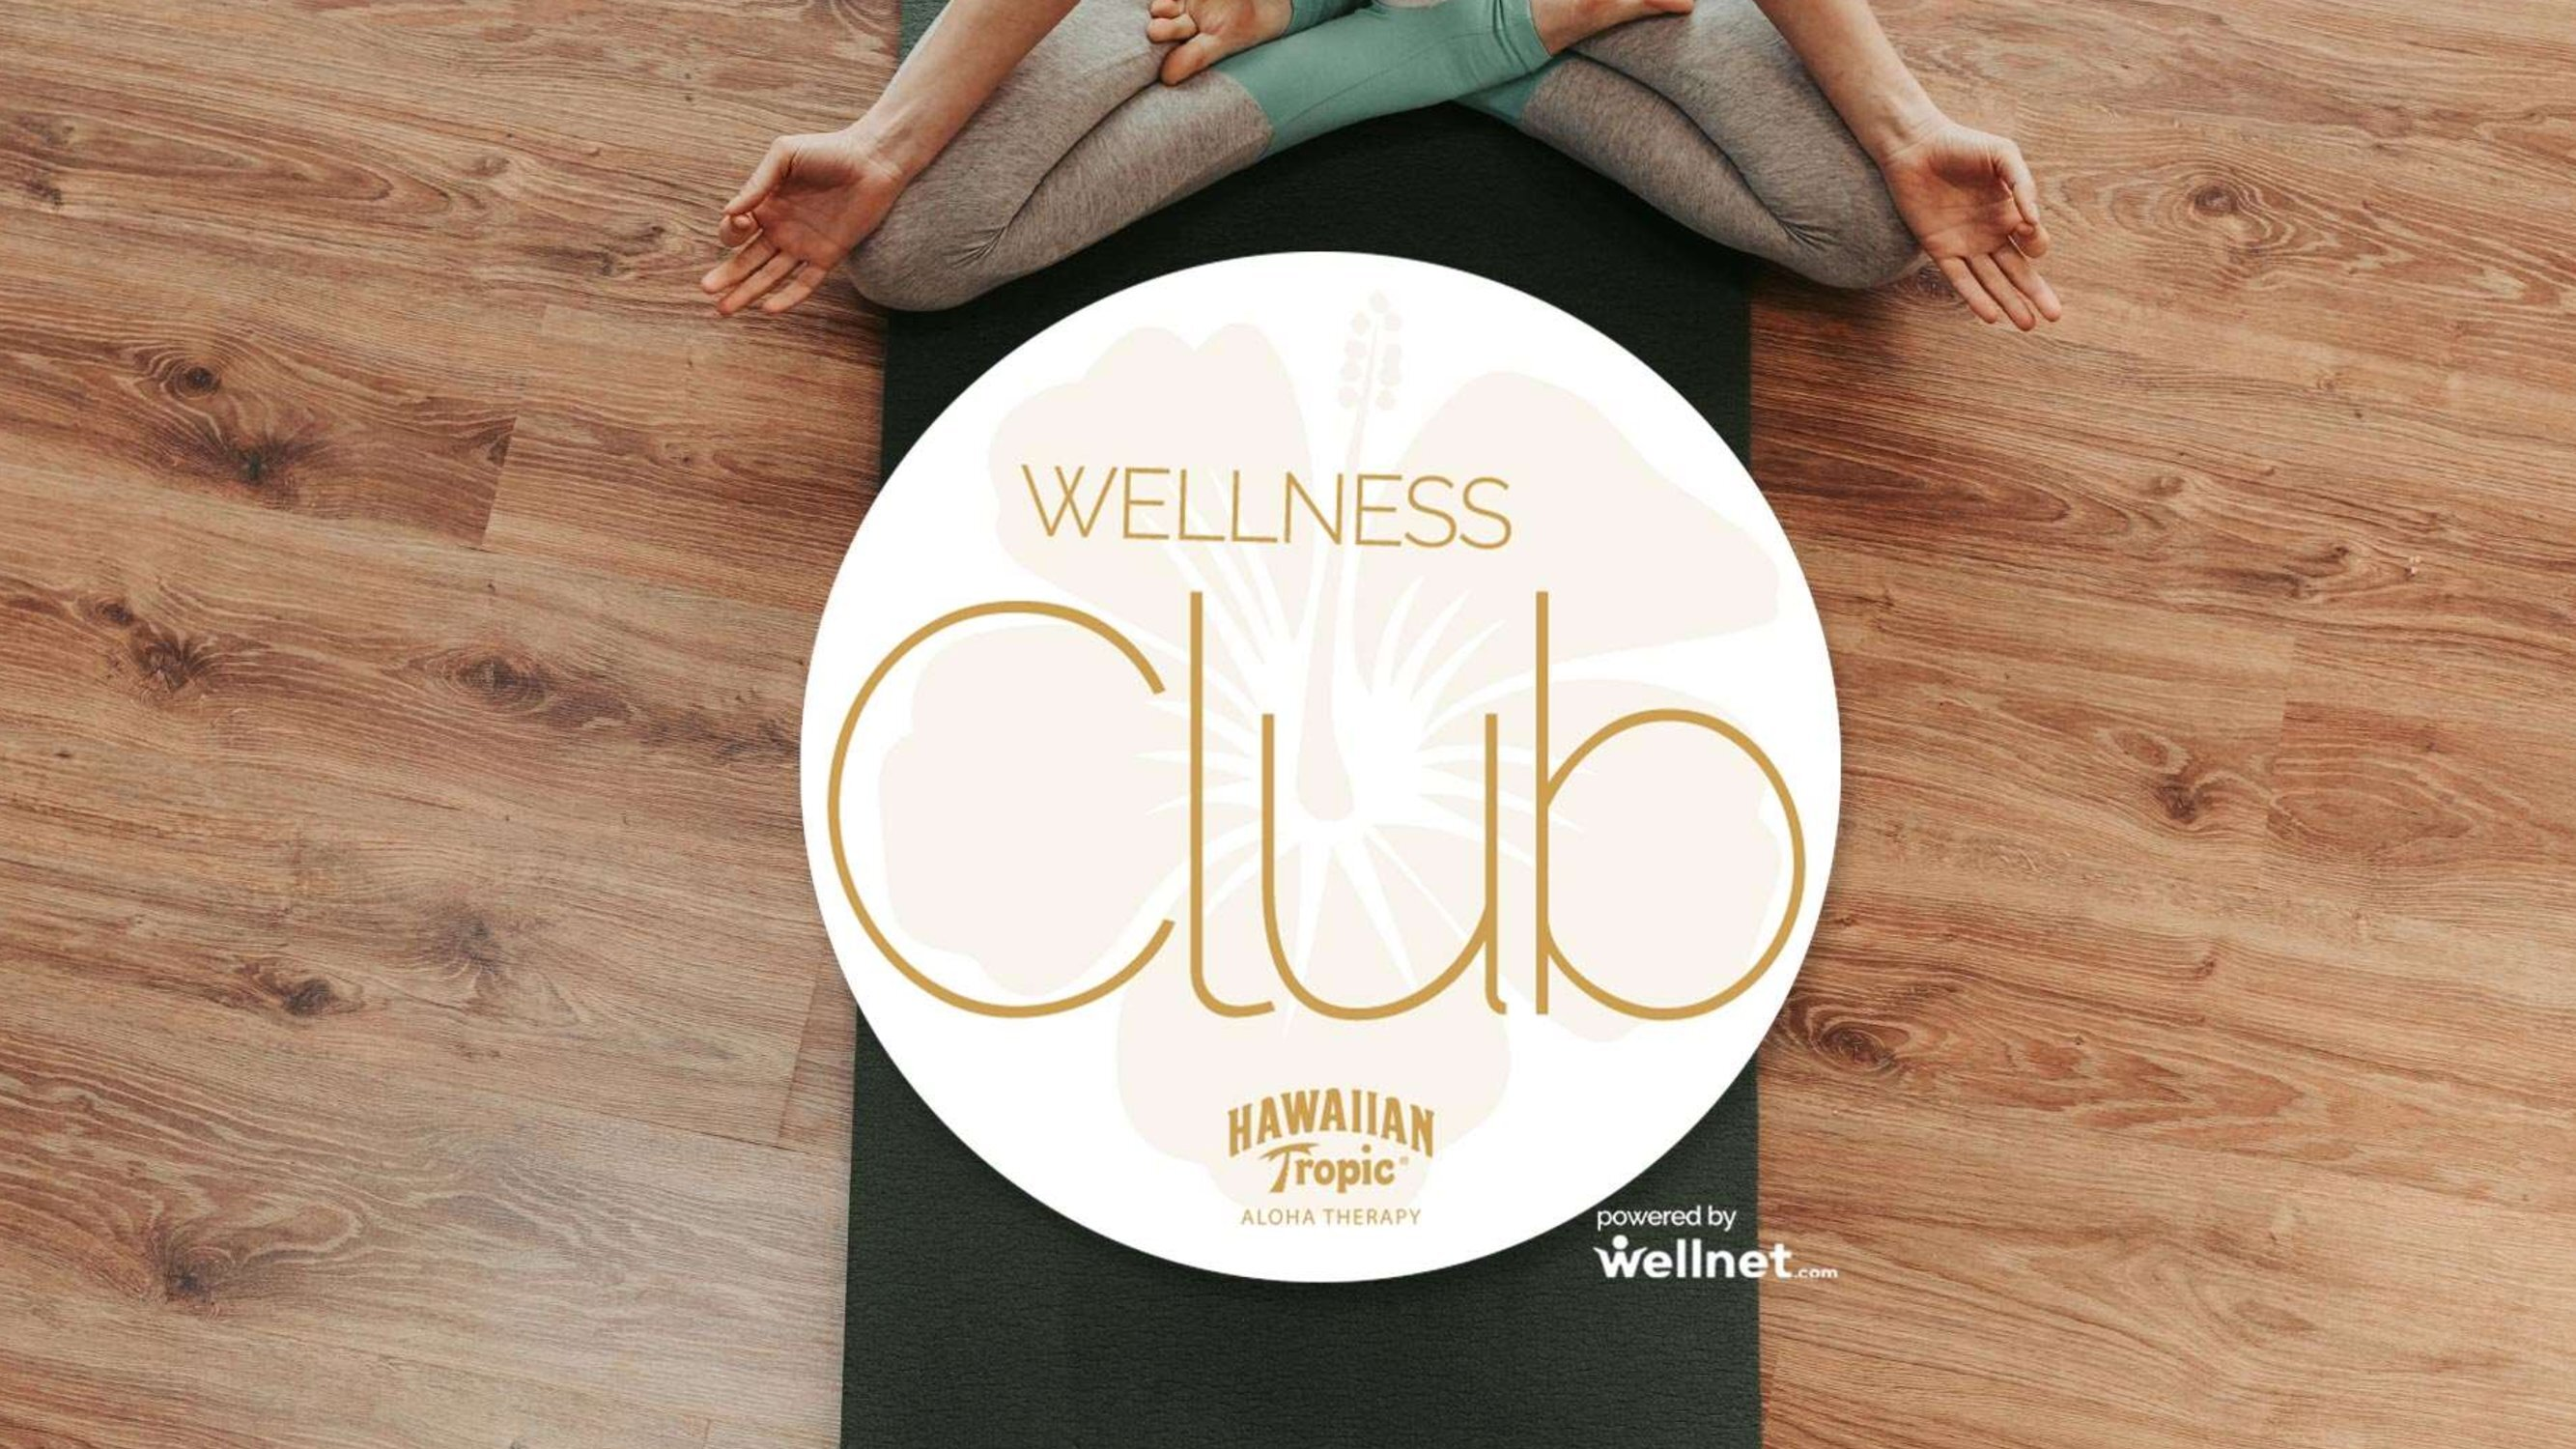 conoce-wellness-club-by-hawaiian-tropic-tu-lugar-de-bienestar5f08b67a664eb